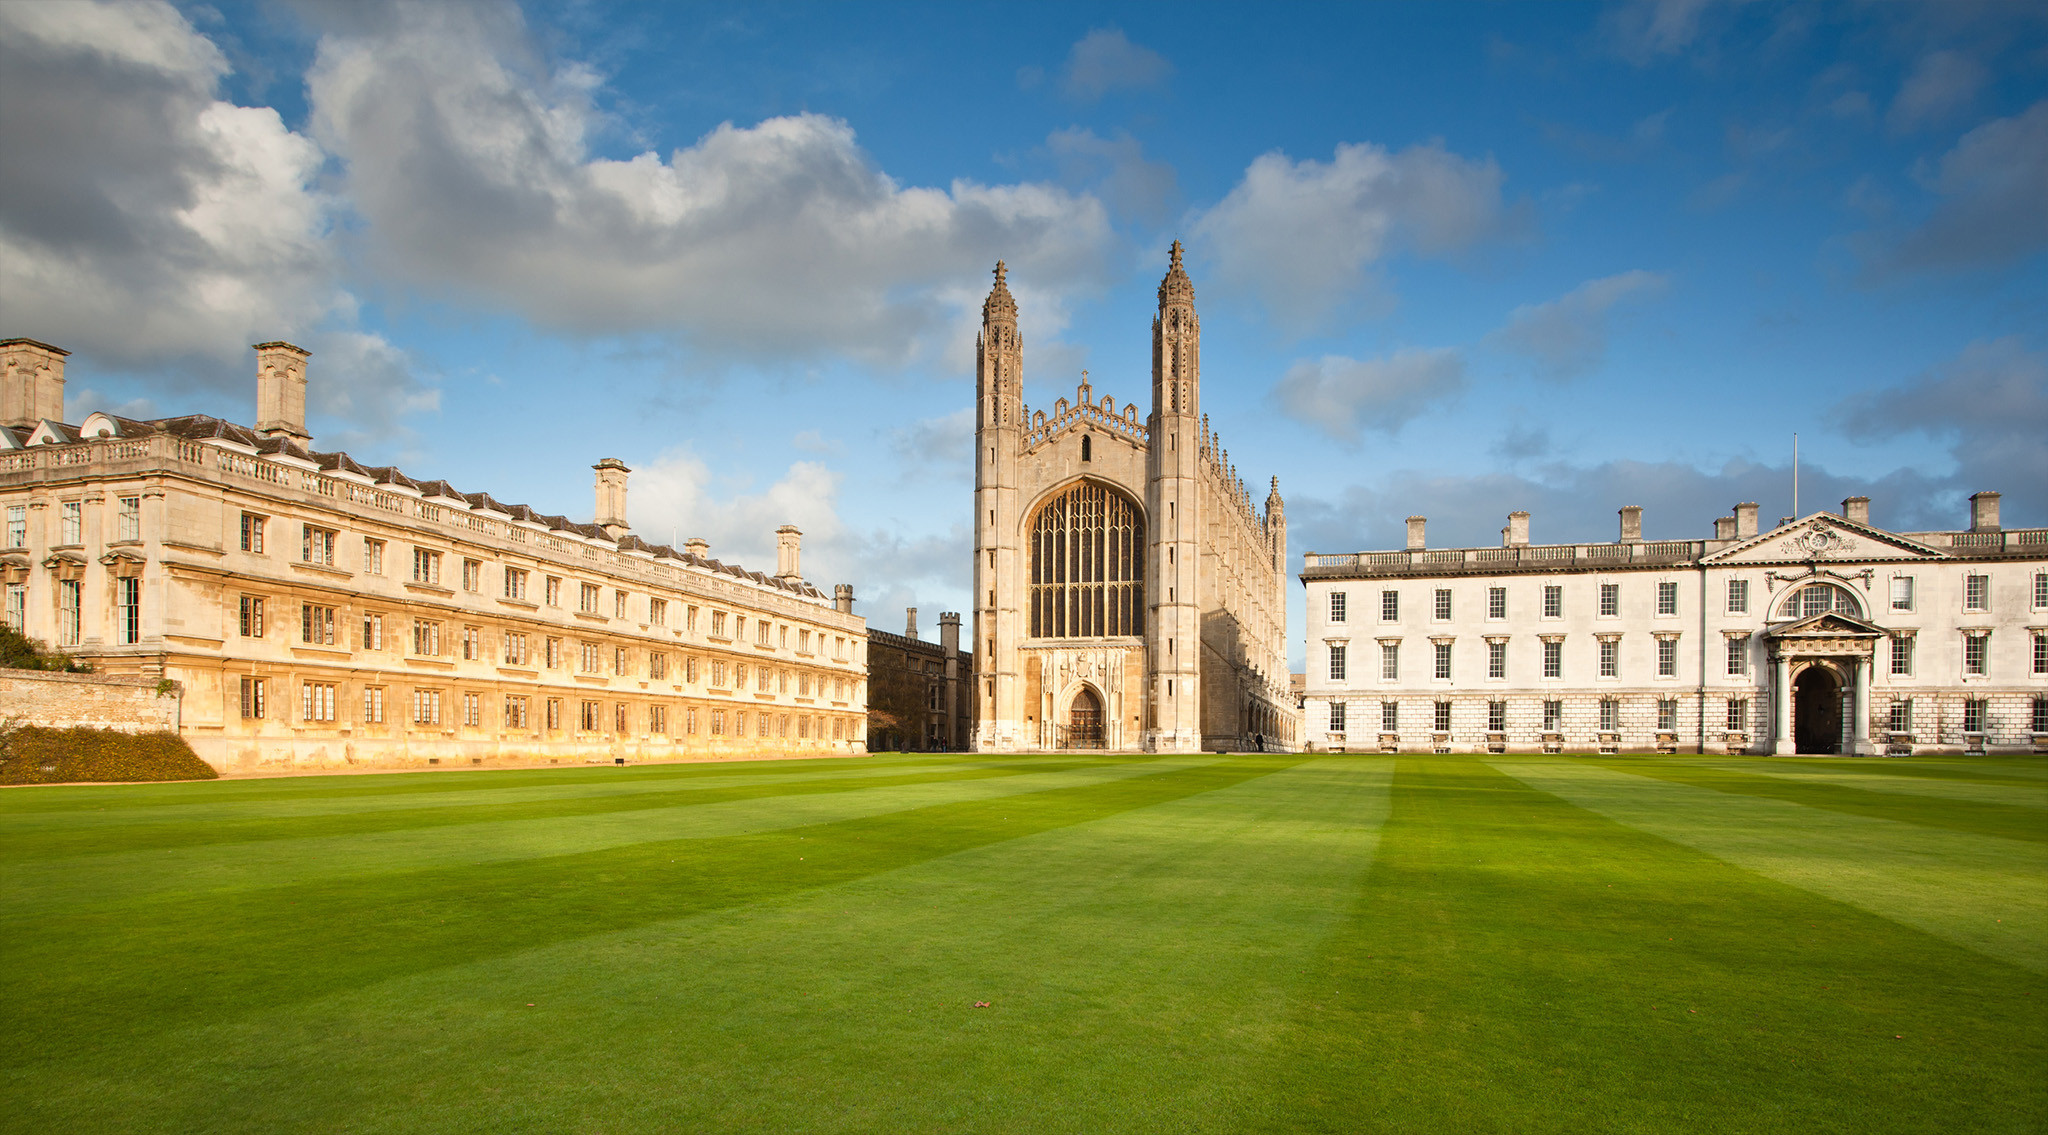 44-kings-college-cambridge